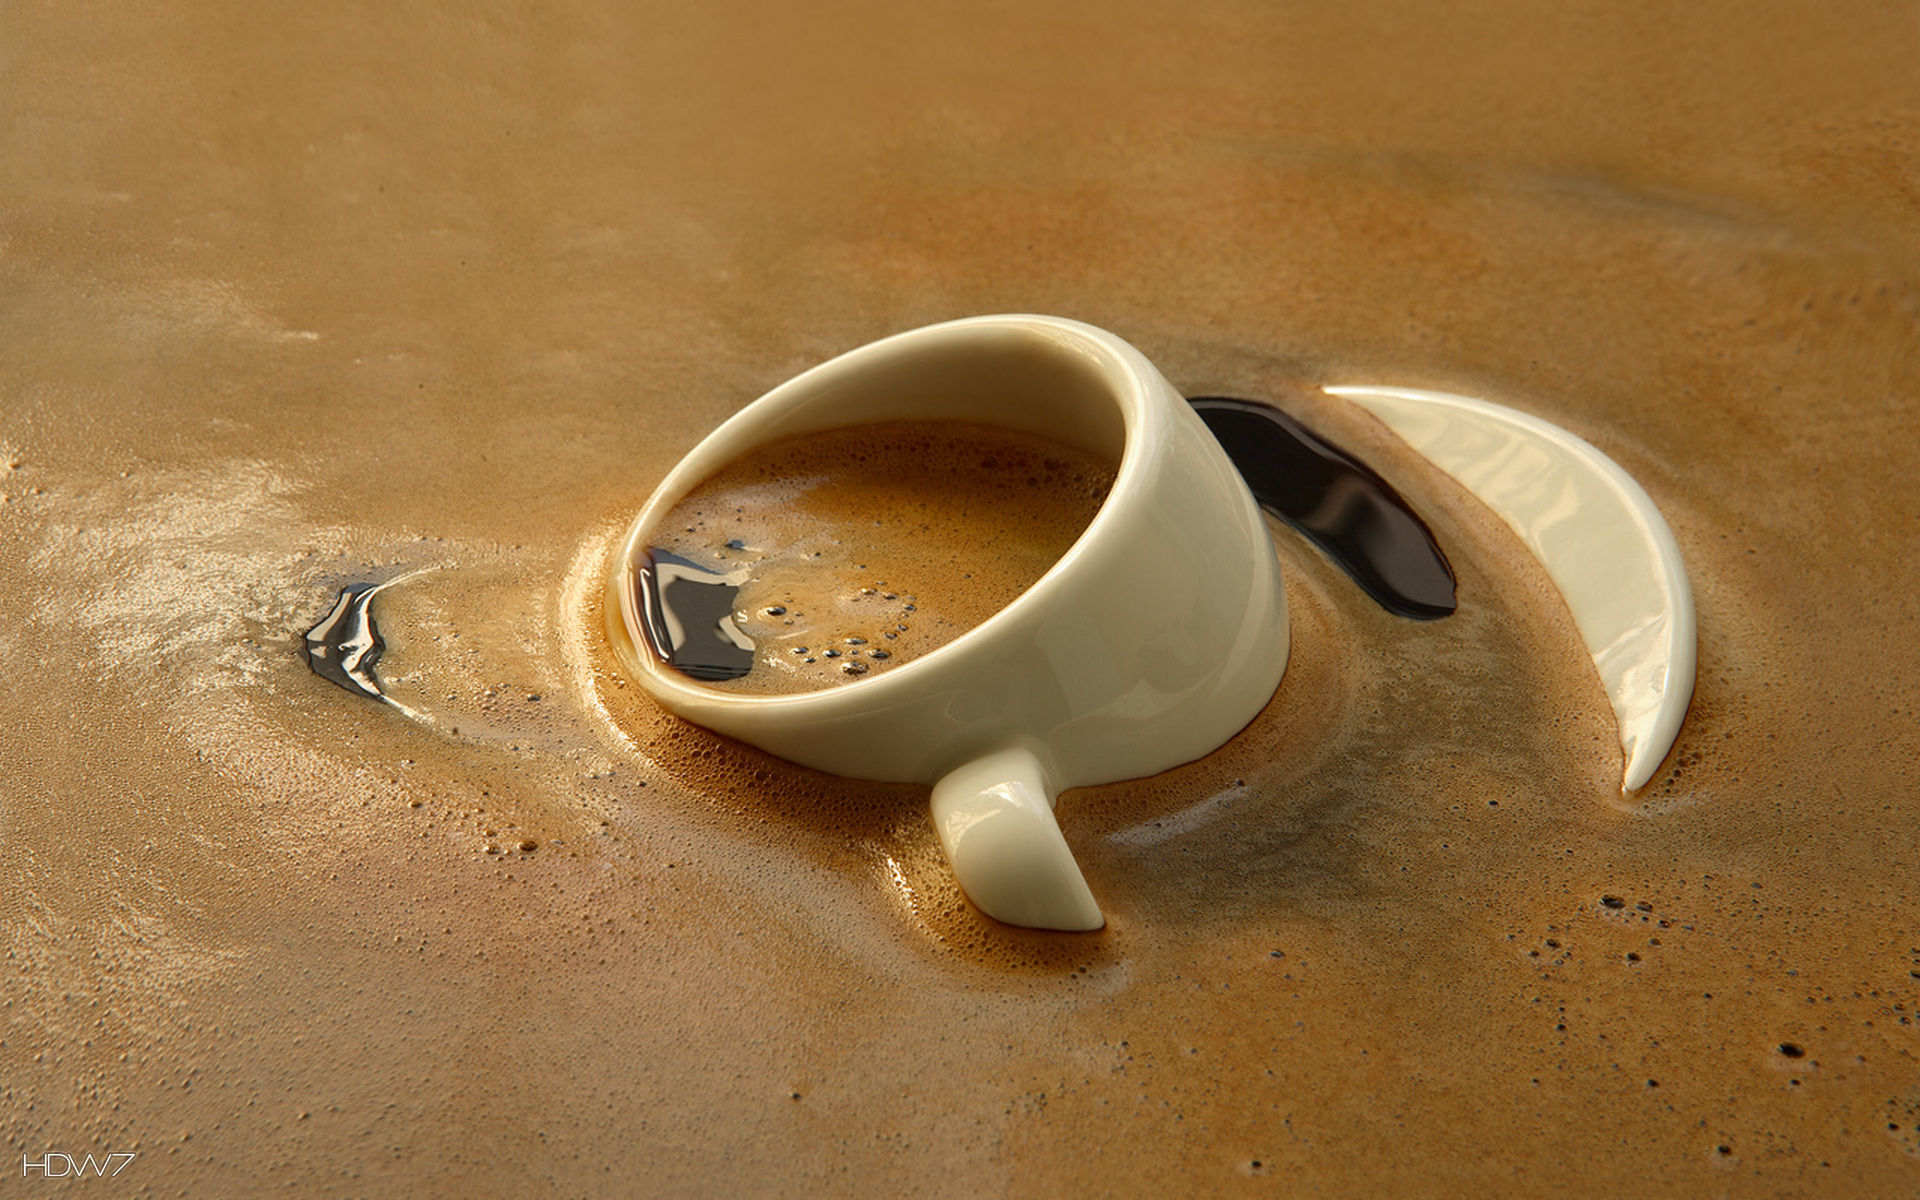 sunk cup of coffee